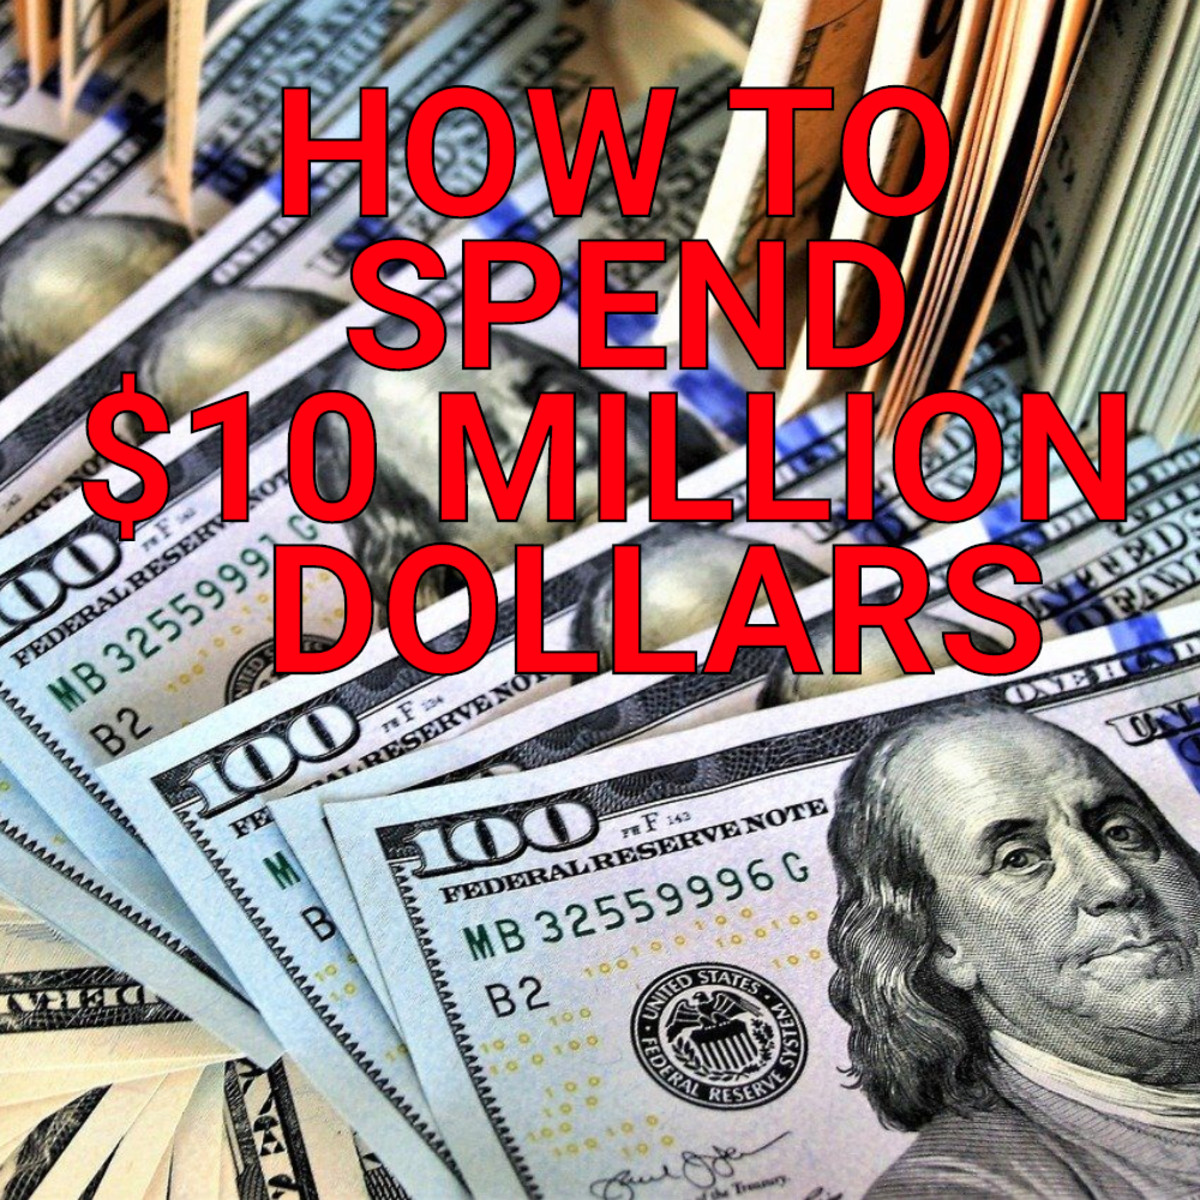 10 Great Things You Can Buy for $10 Million: You Know You Want Them